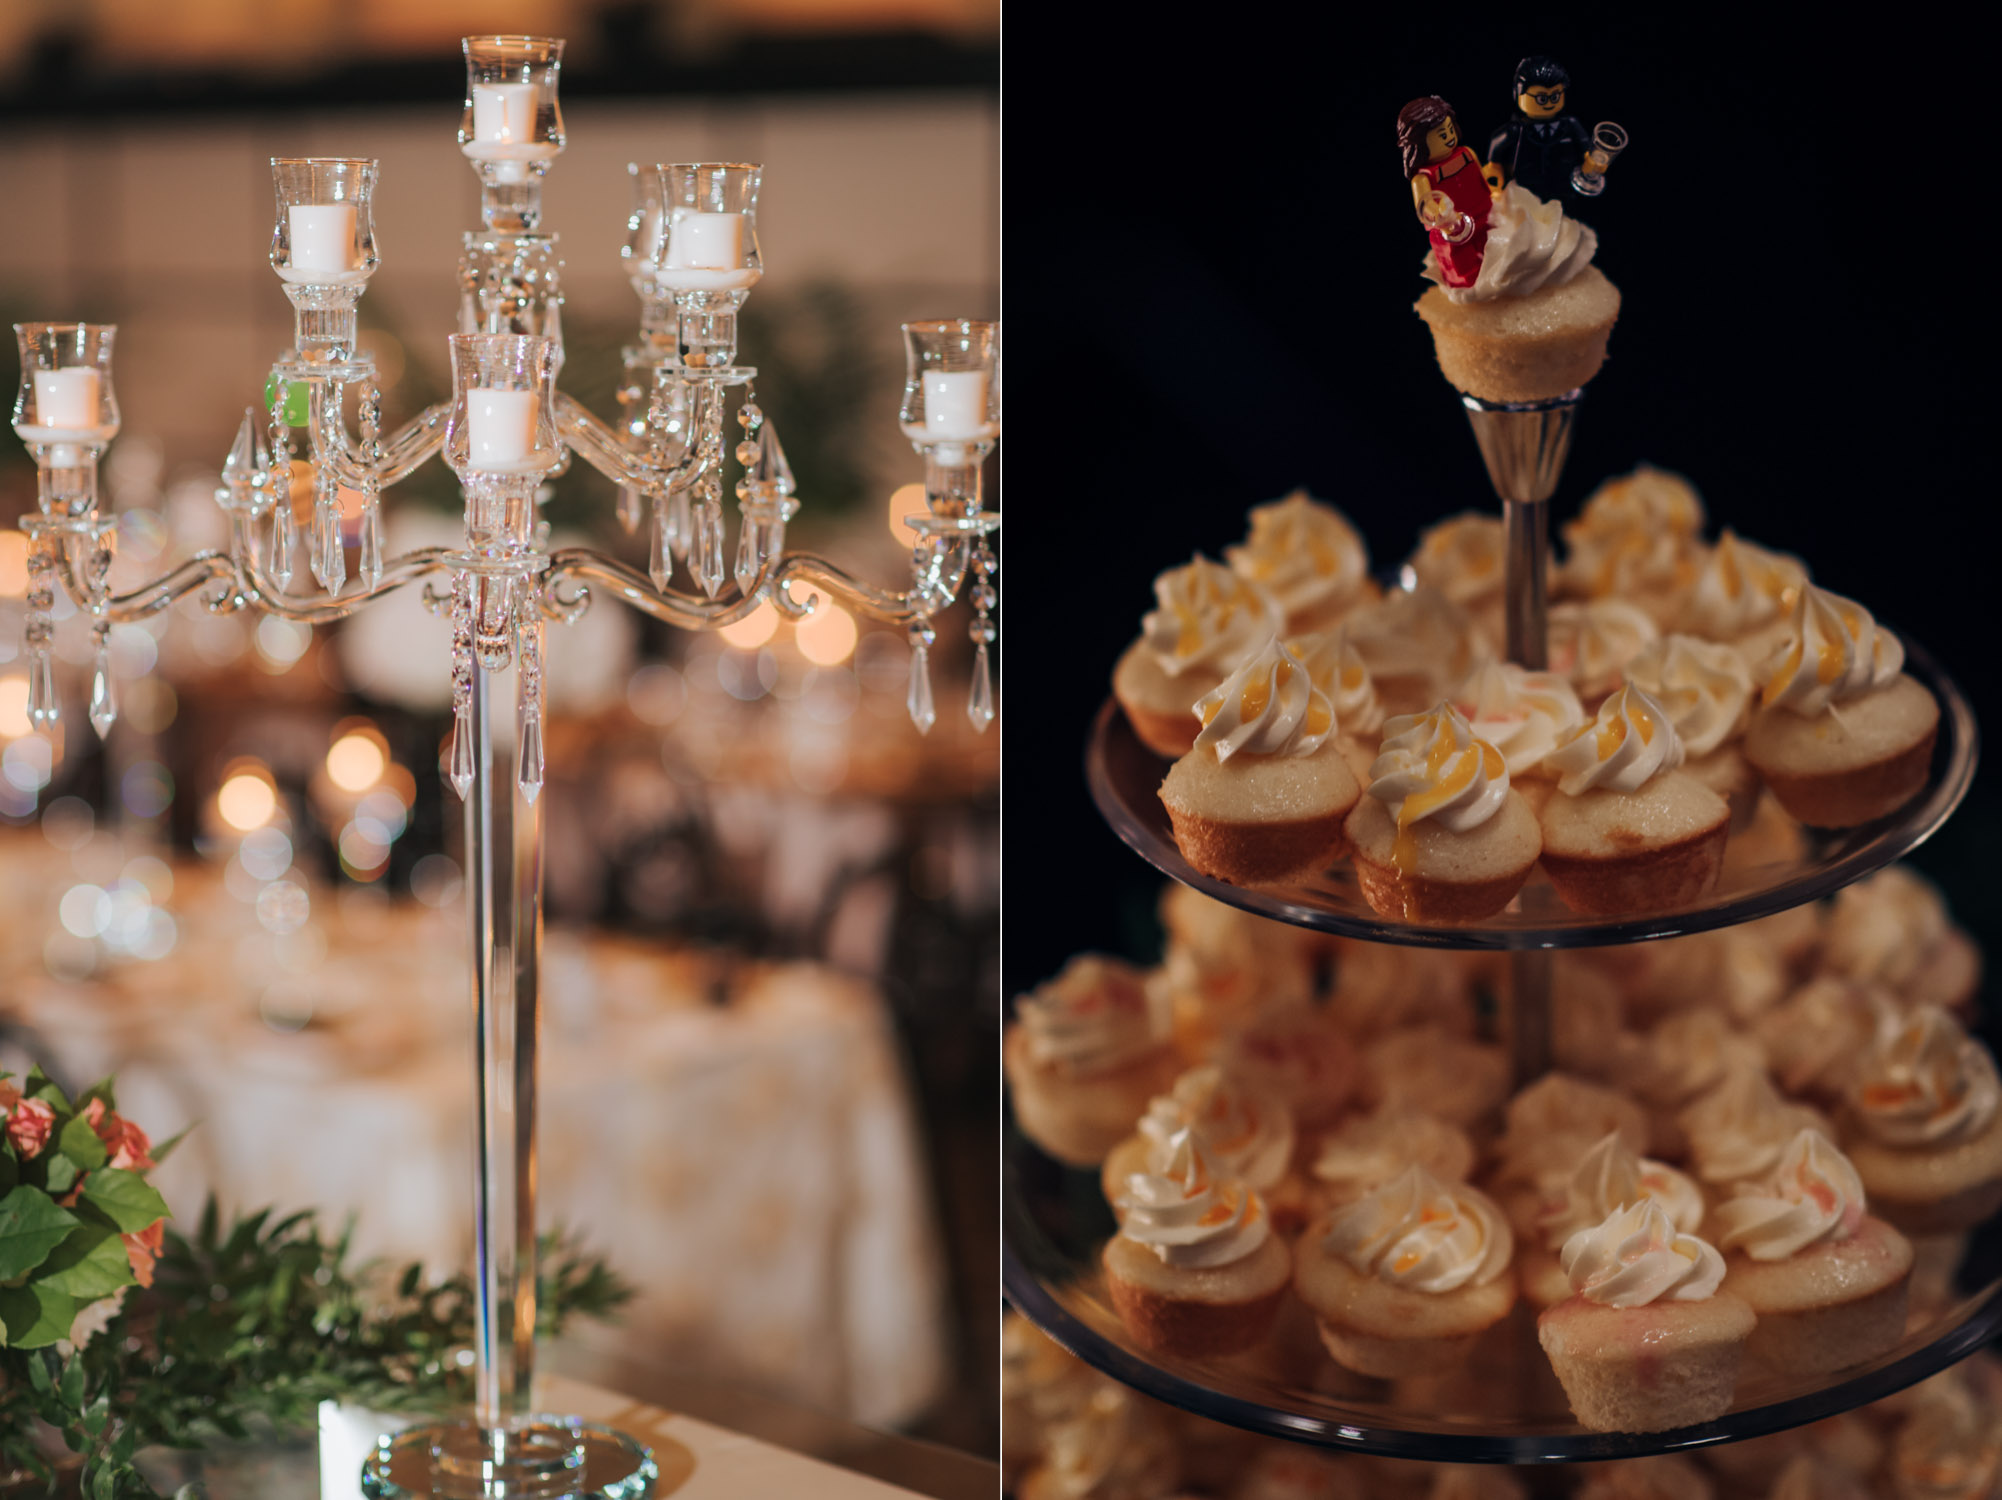 Wedding decor details at the Eglinton Grand Toronto